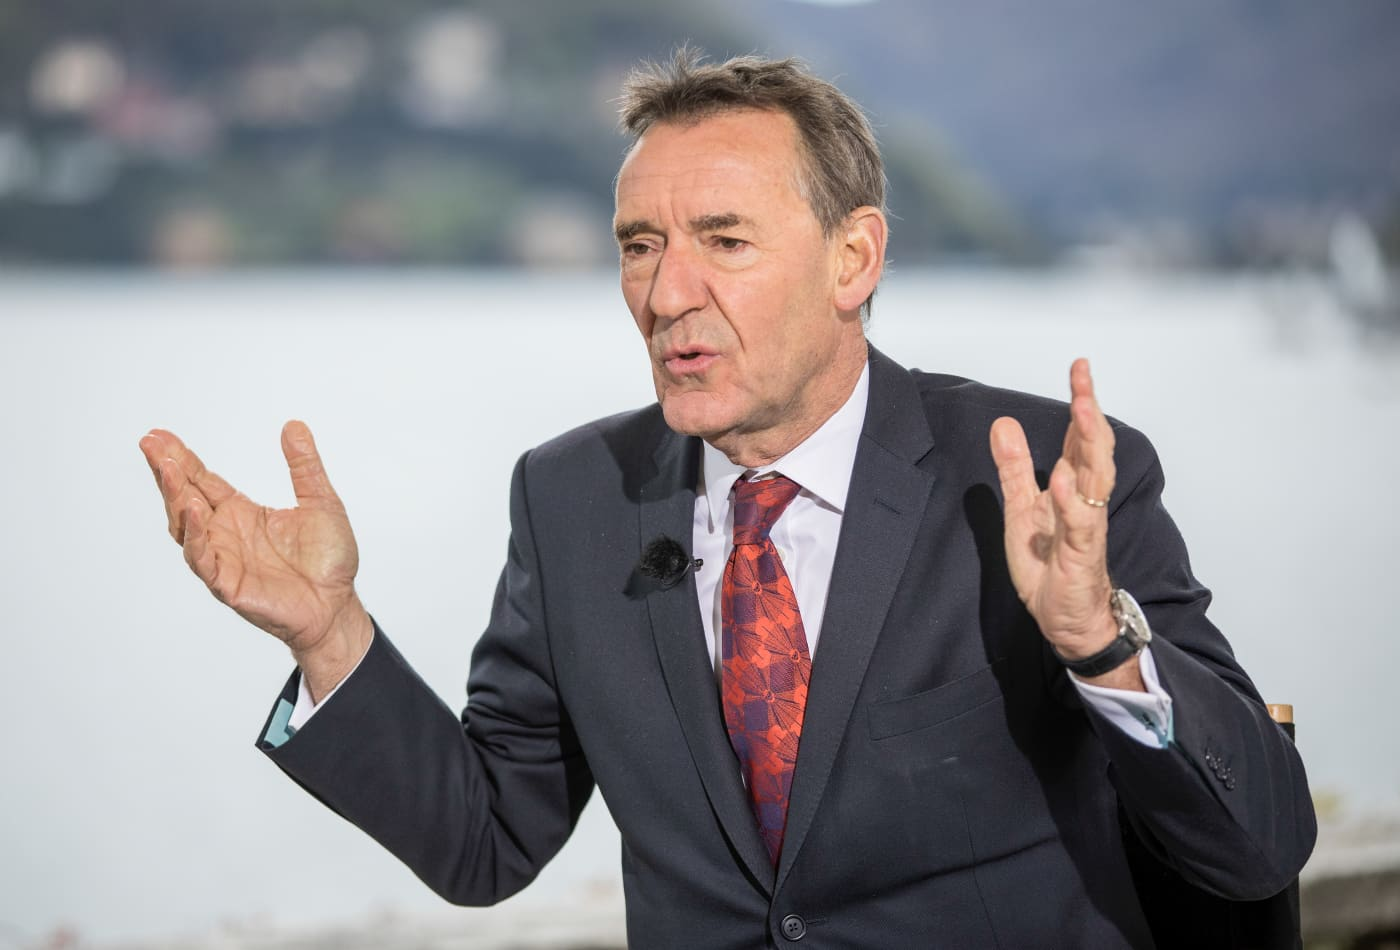 China is more concerned by Biden than Trump, economist Jim O'Neill says